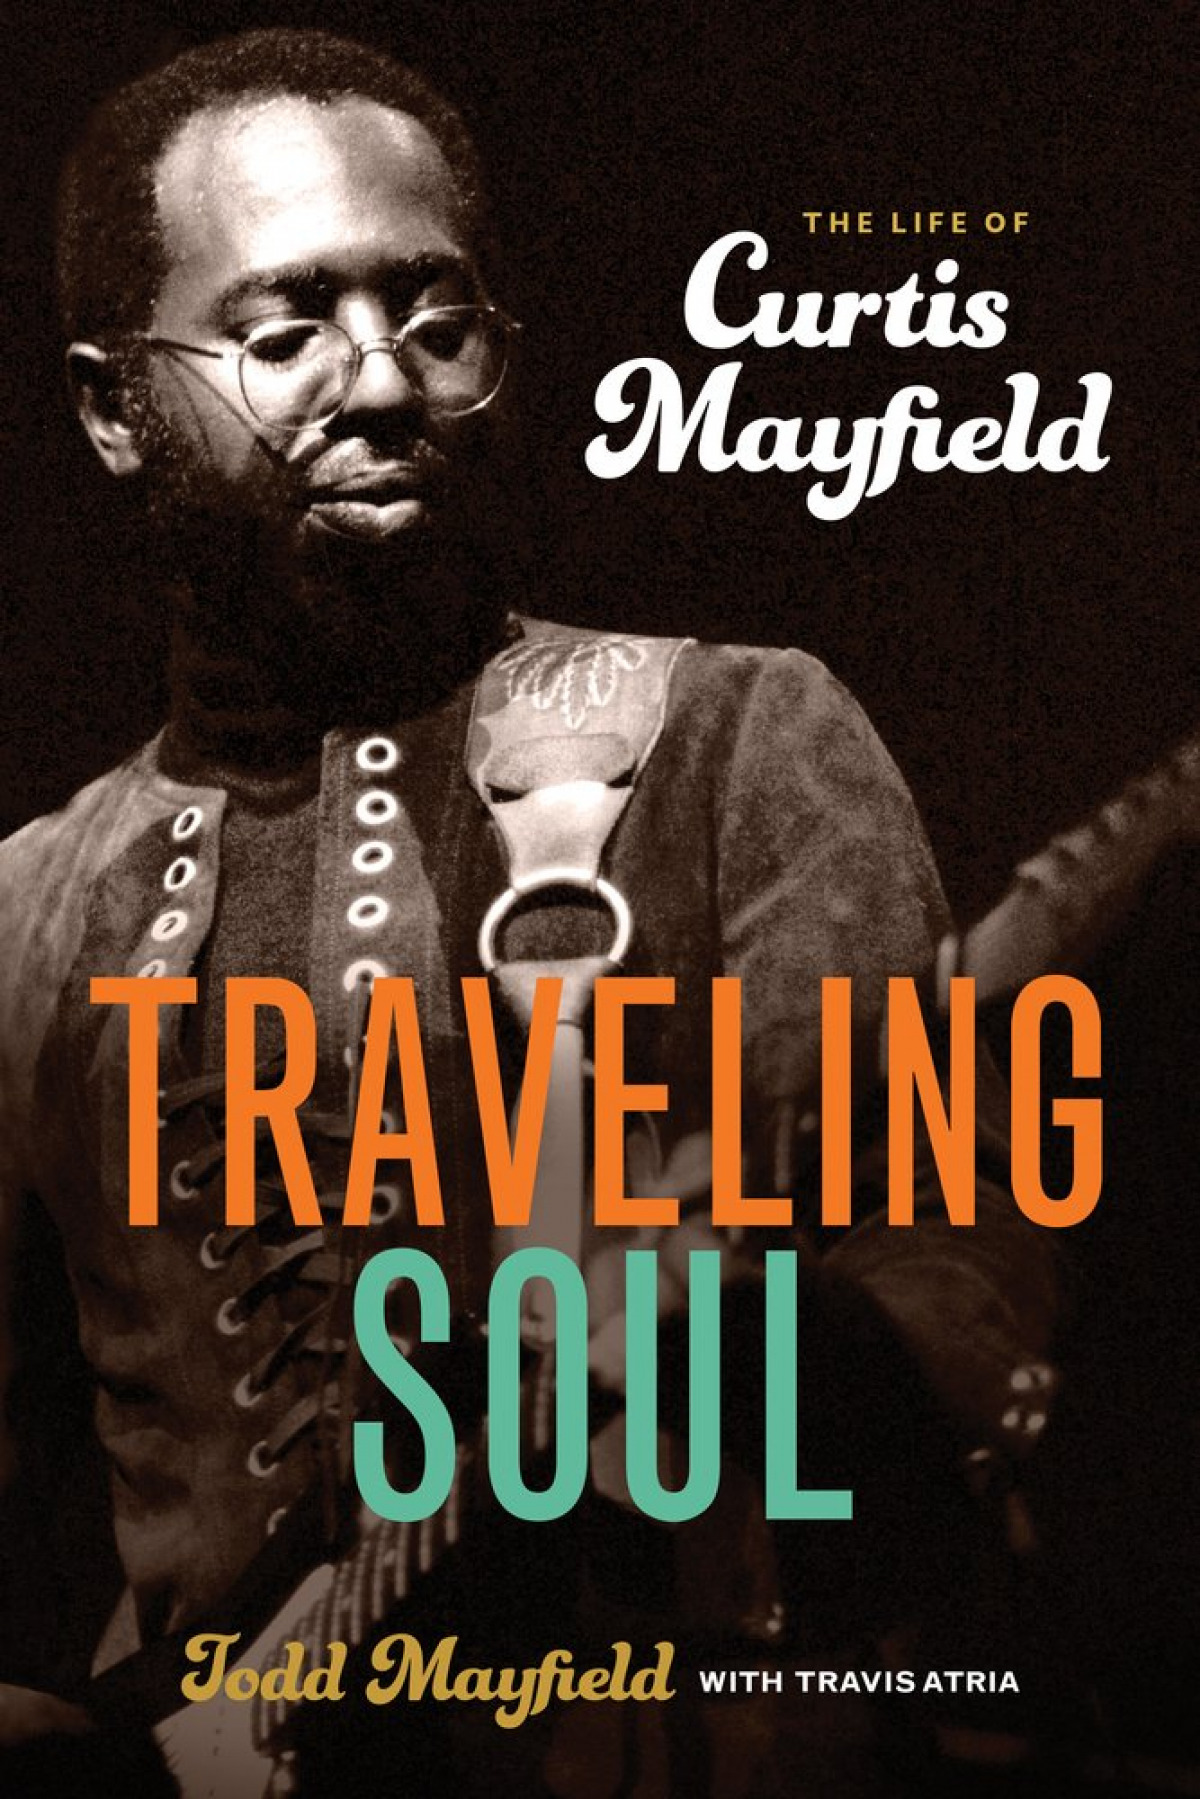 TRAVELING SOUL:THE LIFE OF CURTIS MAYFIELD